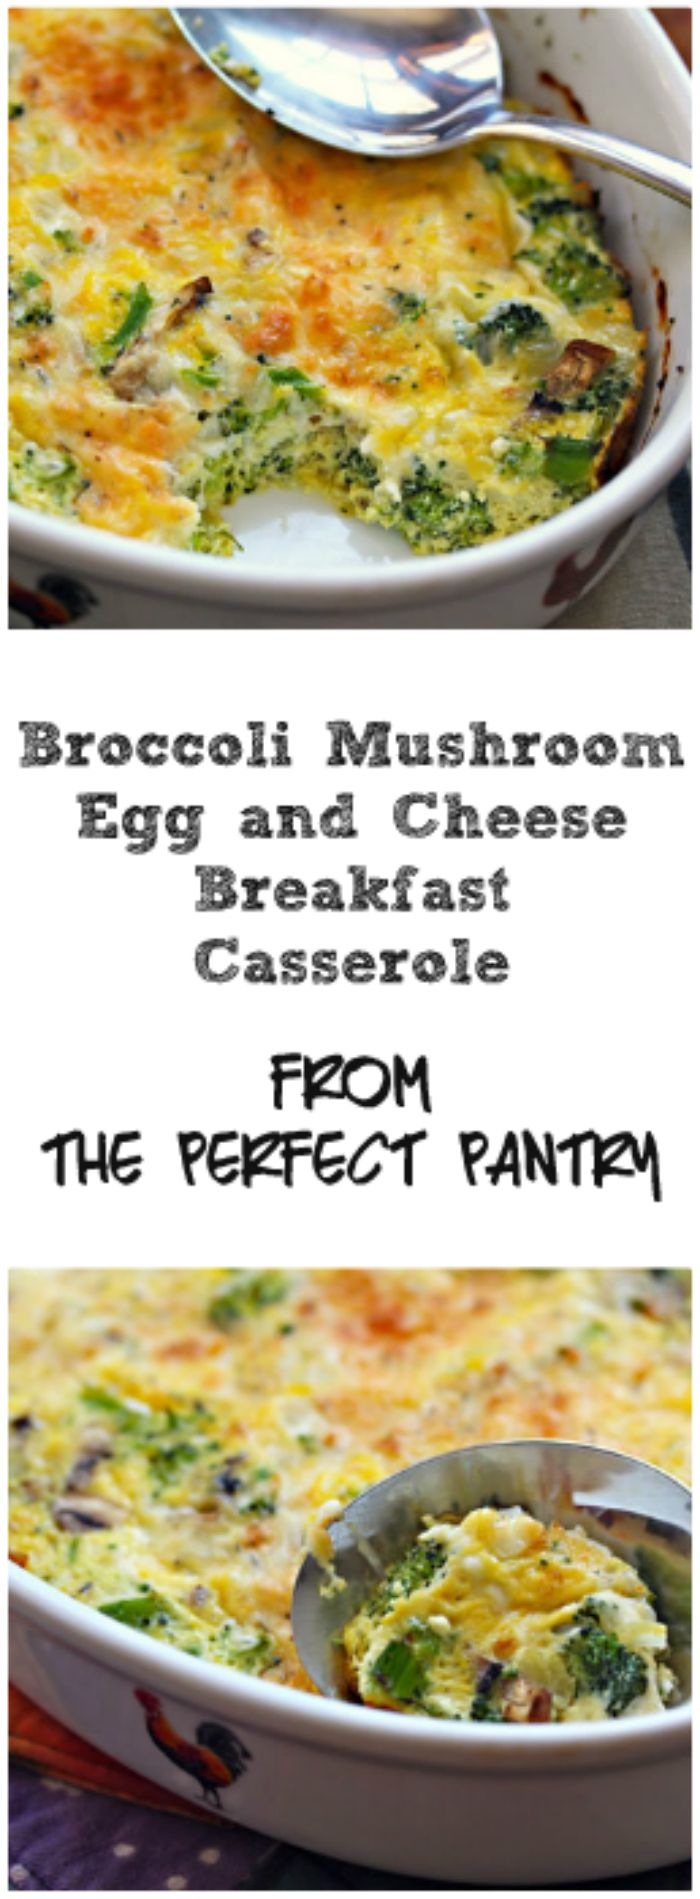 Egg Casserole on Pinterest | Egg Casserole, Broccoli Raab and Quinoa ...